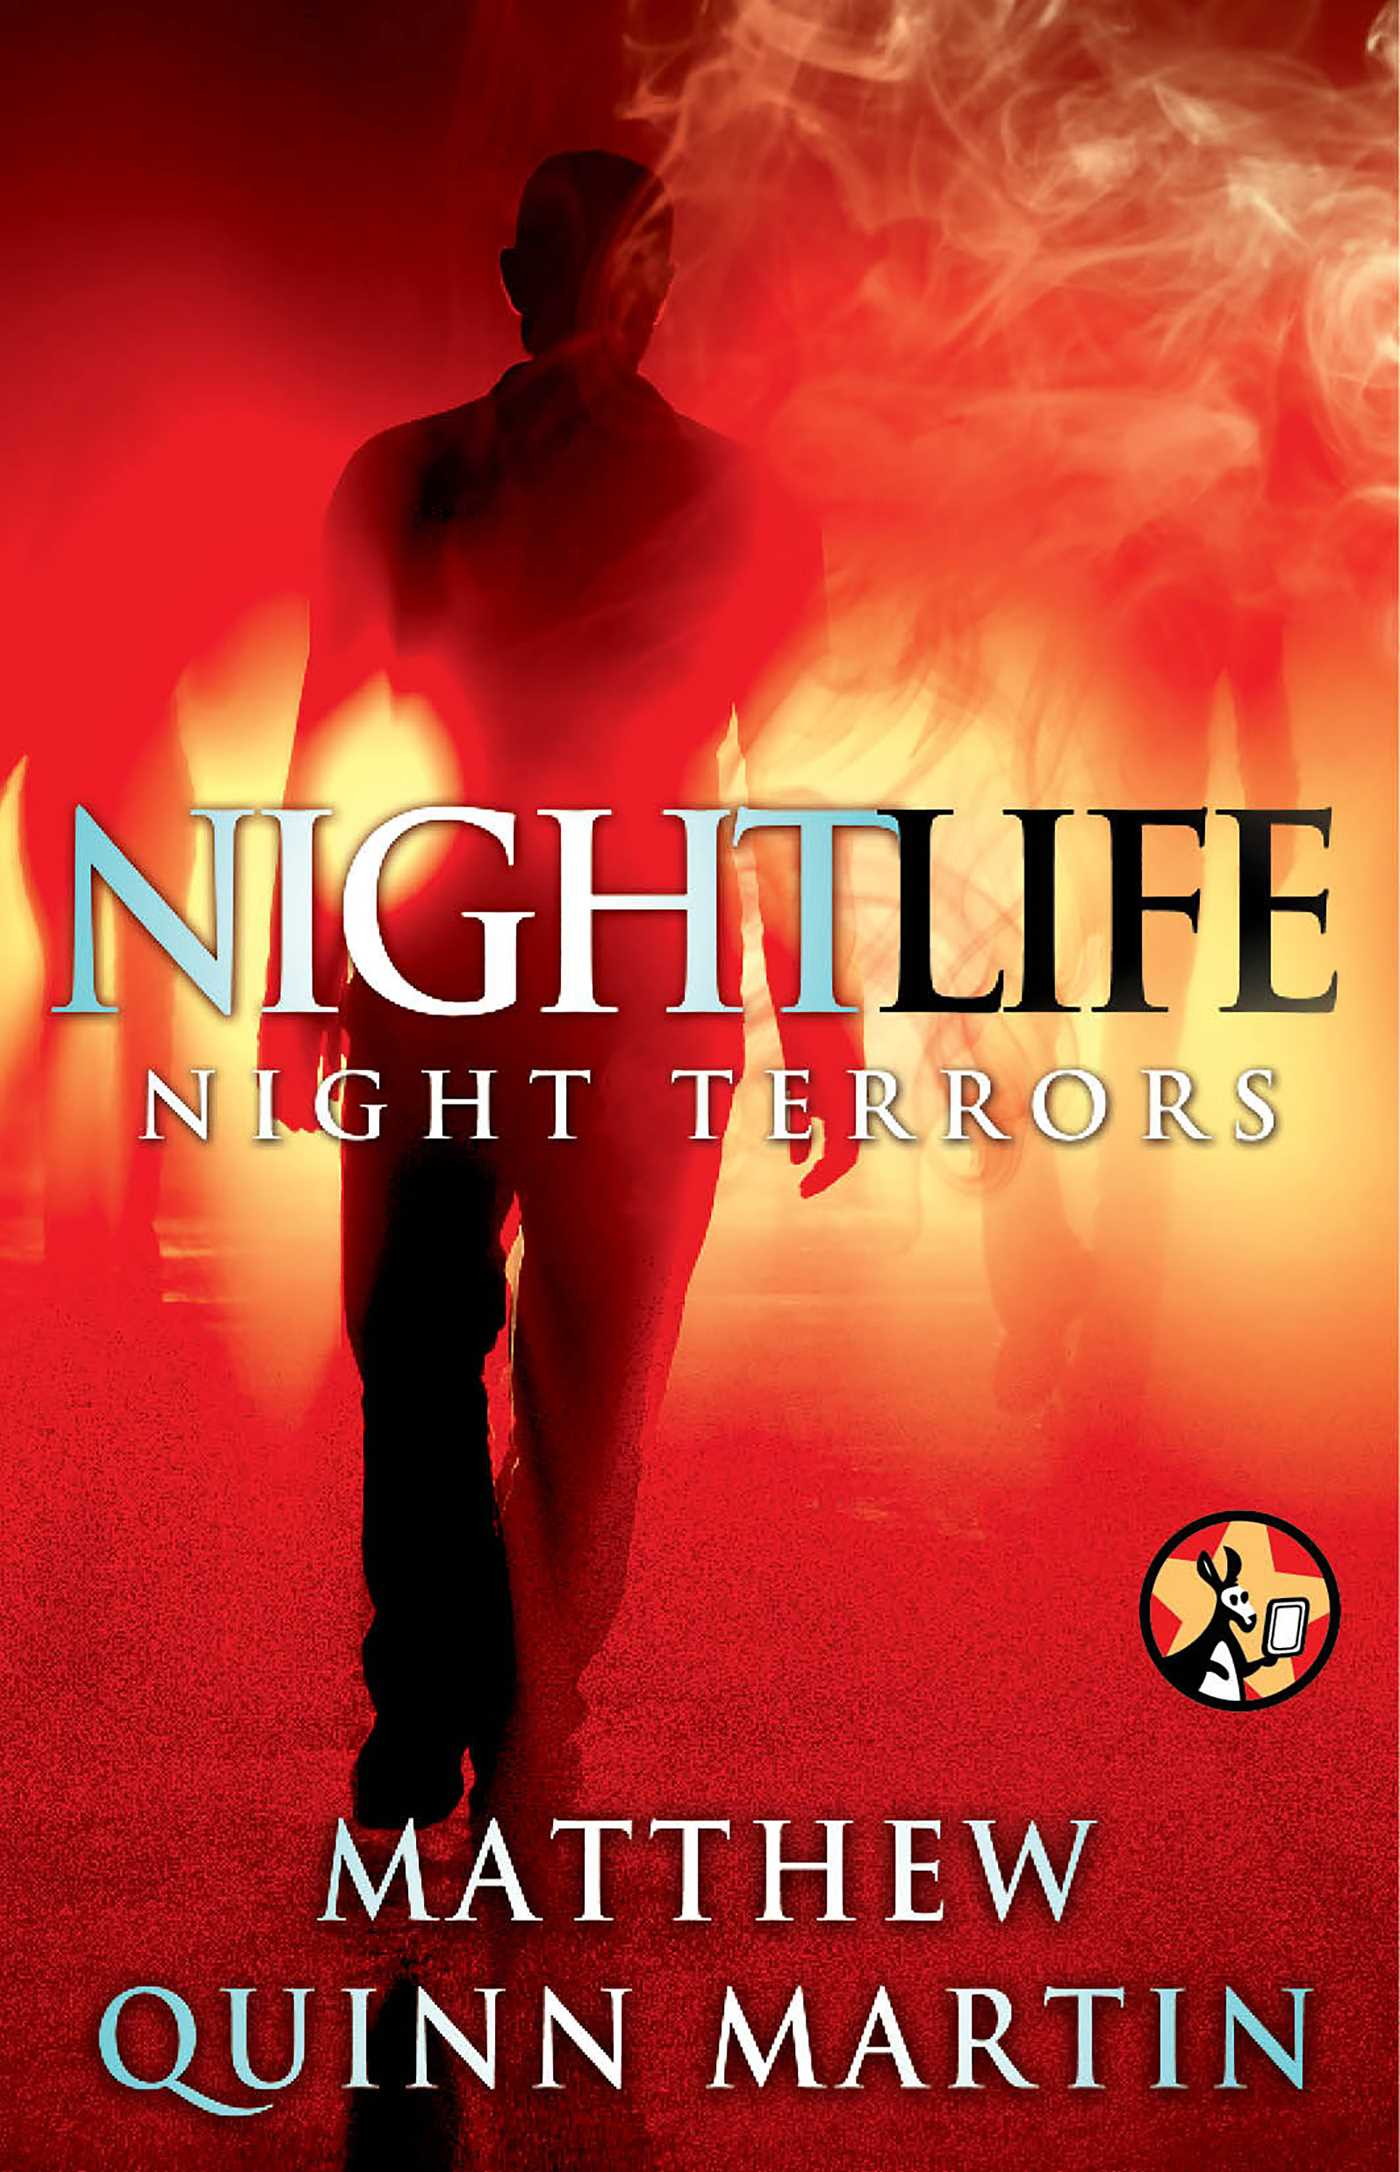 Nightlife-night-terrors-9781476746906_hr